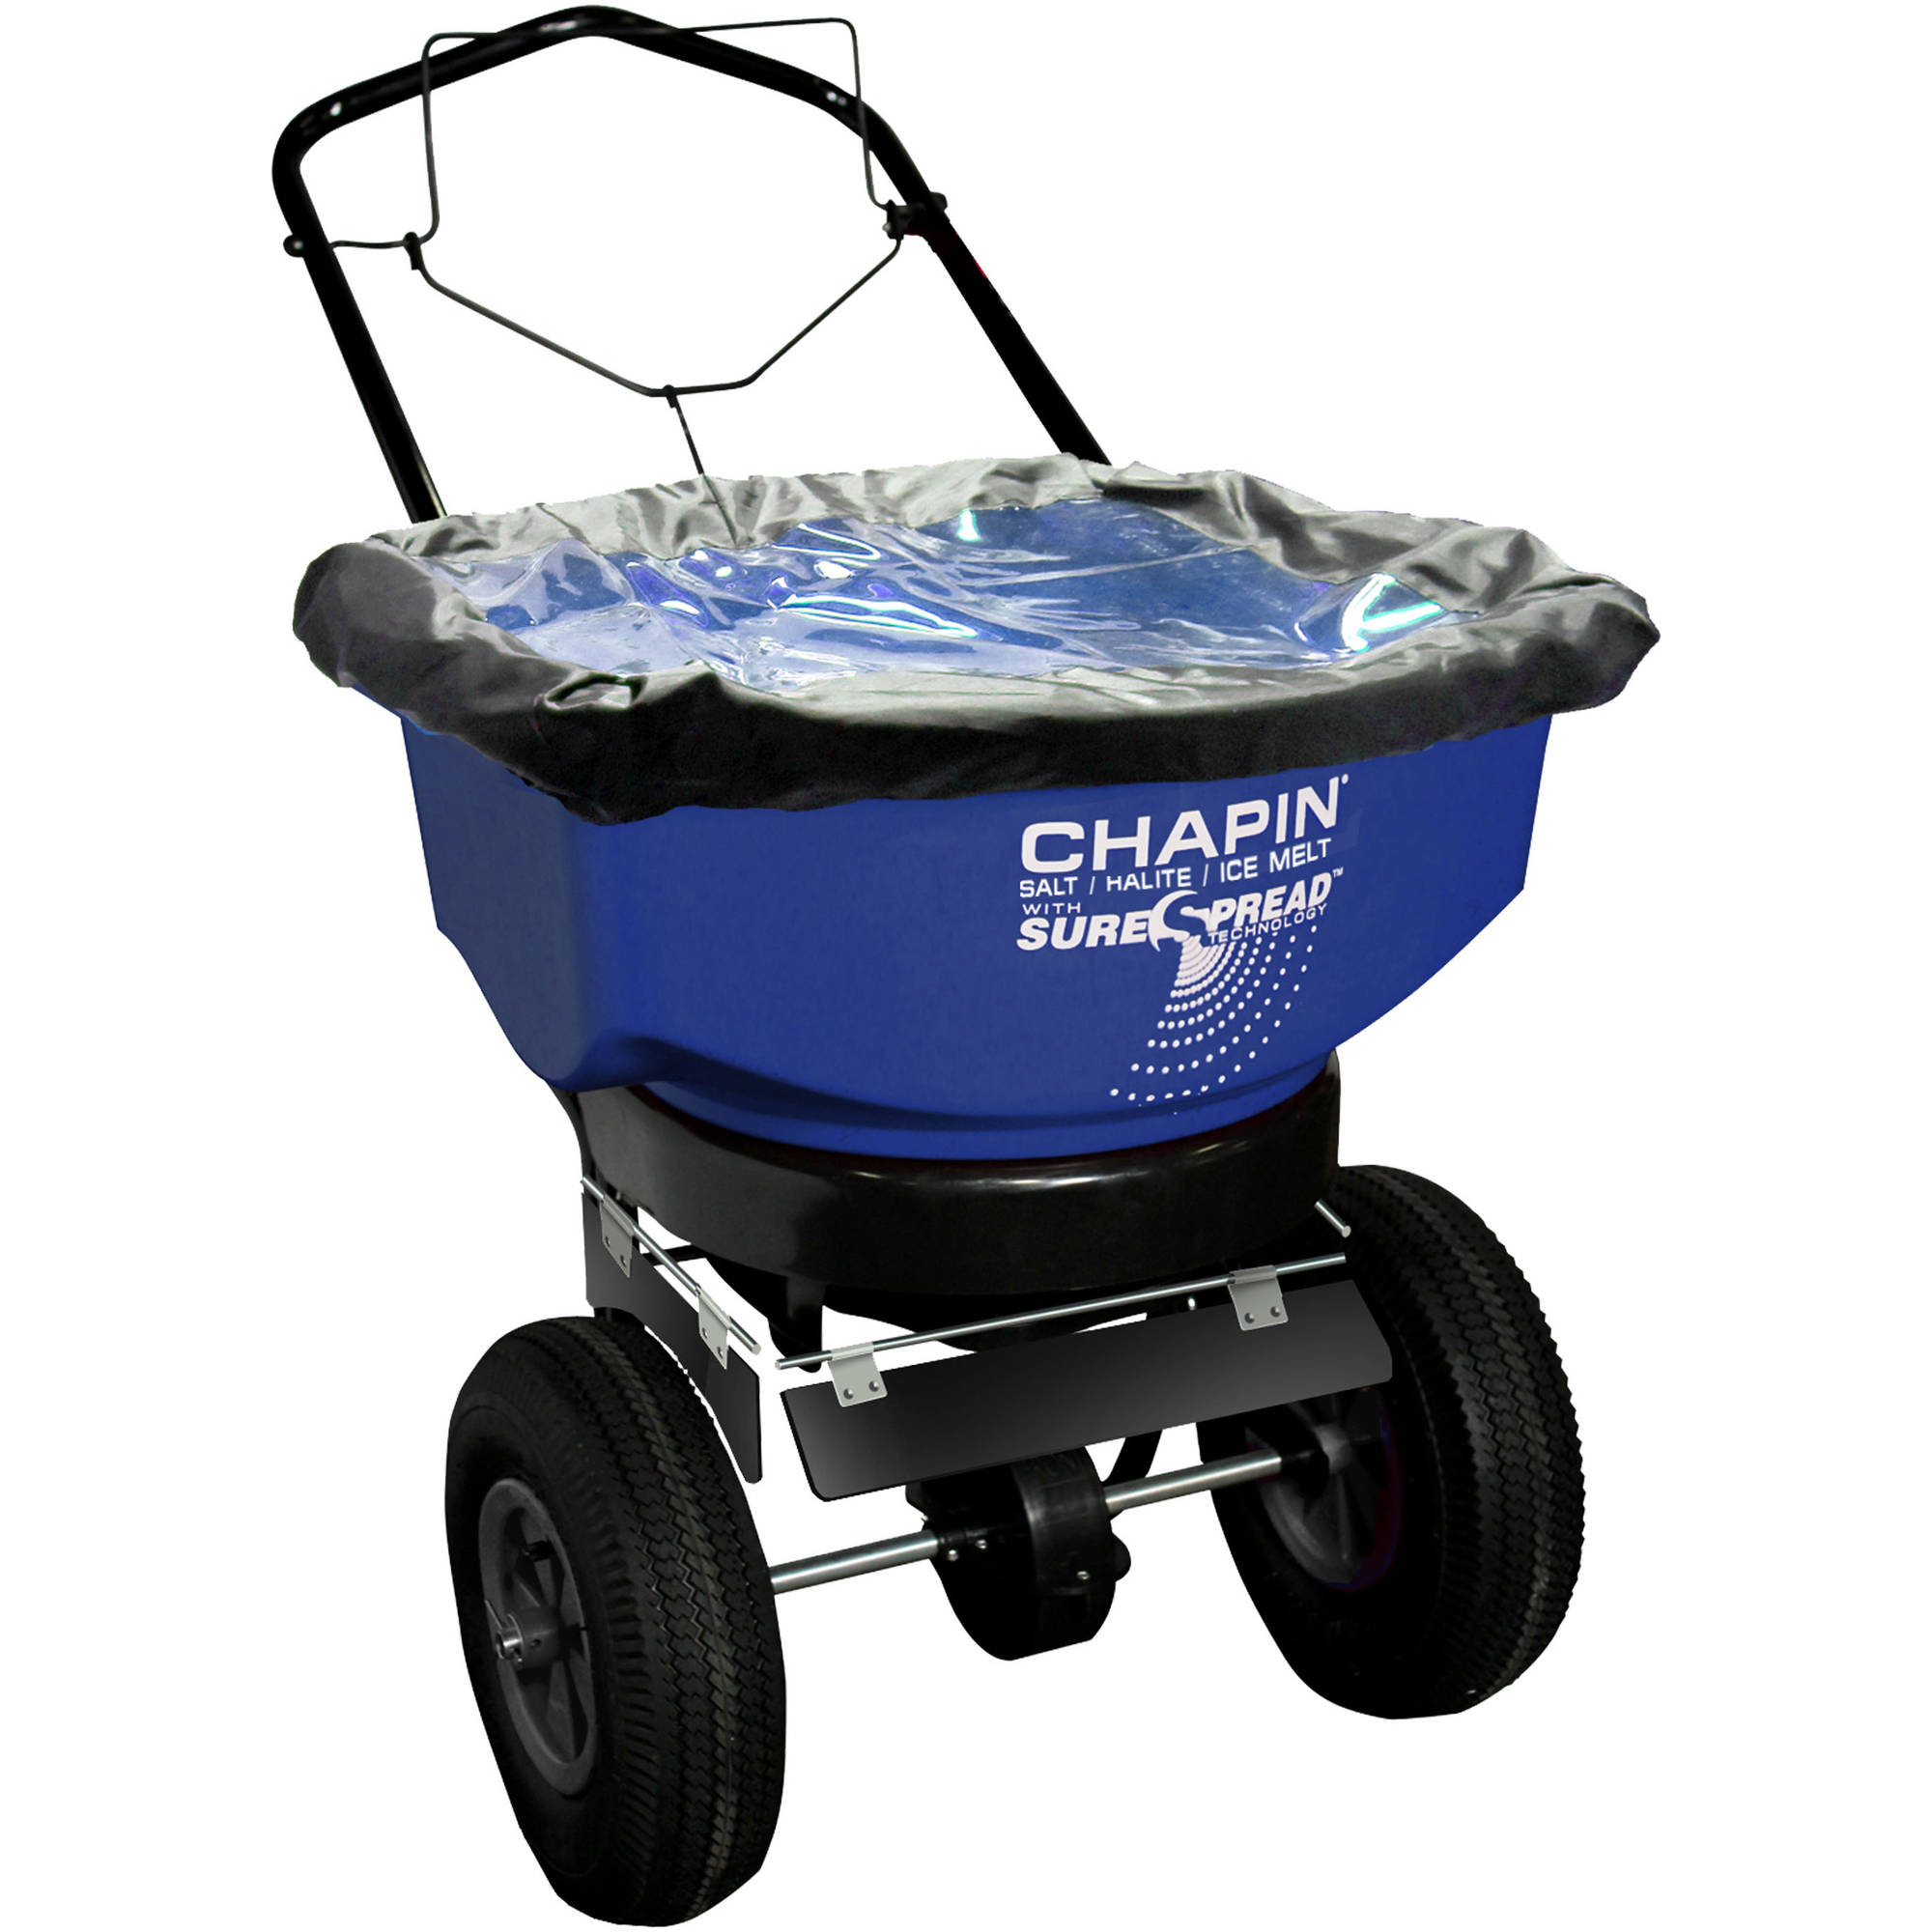 Chapin 80088A 80-Pound Capacity Residential Salt/Ice Melt Spreader With Edge Control